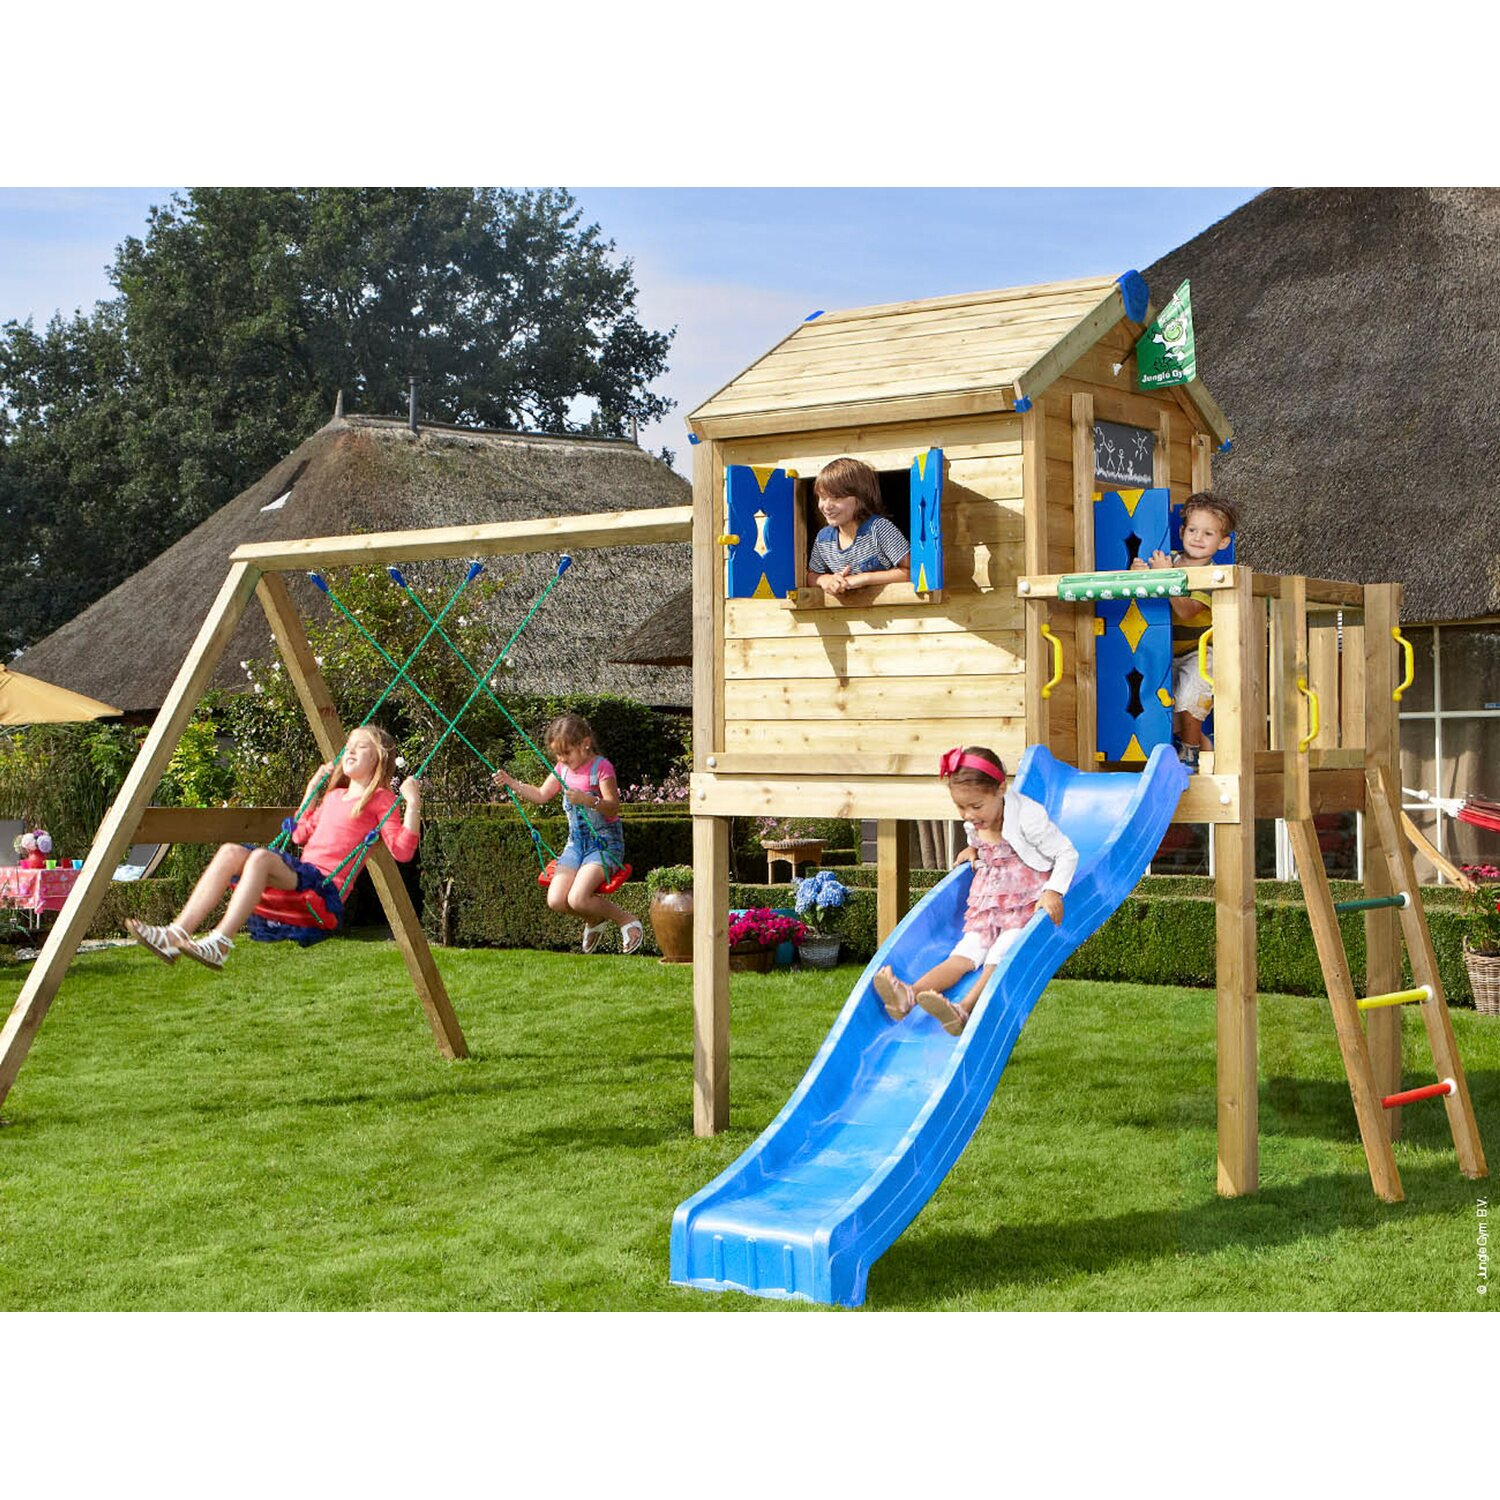 jungle gym spielhaus l 2 schaukel mit rutsche blau kaufen bei obi. Black Bedroom Furniture Sets. Home Design Ideas